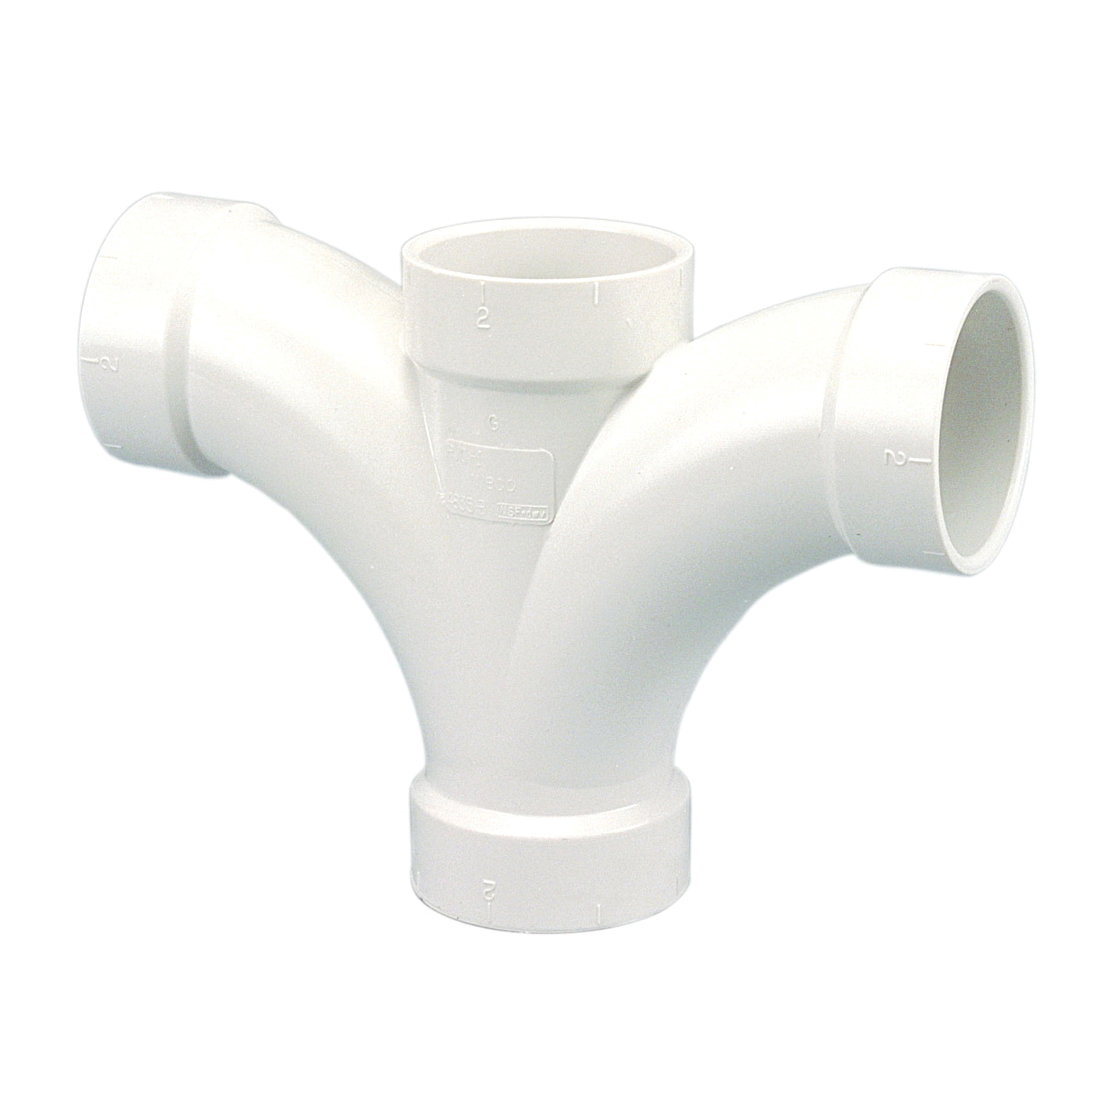 NIBCO® K277450 4835-B DWV Double Fixture Tee, 2 in Nominal, Hub End Style, PVC, Domestic